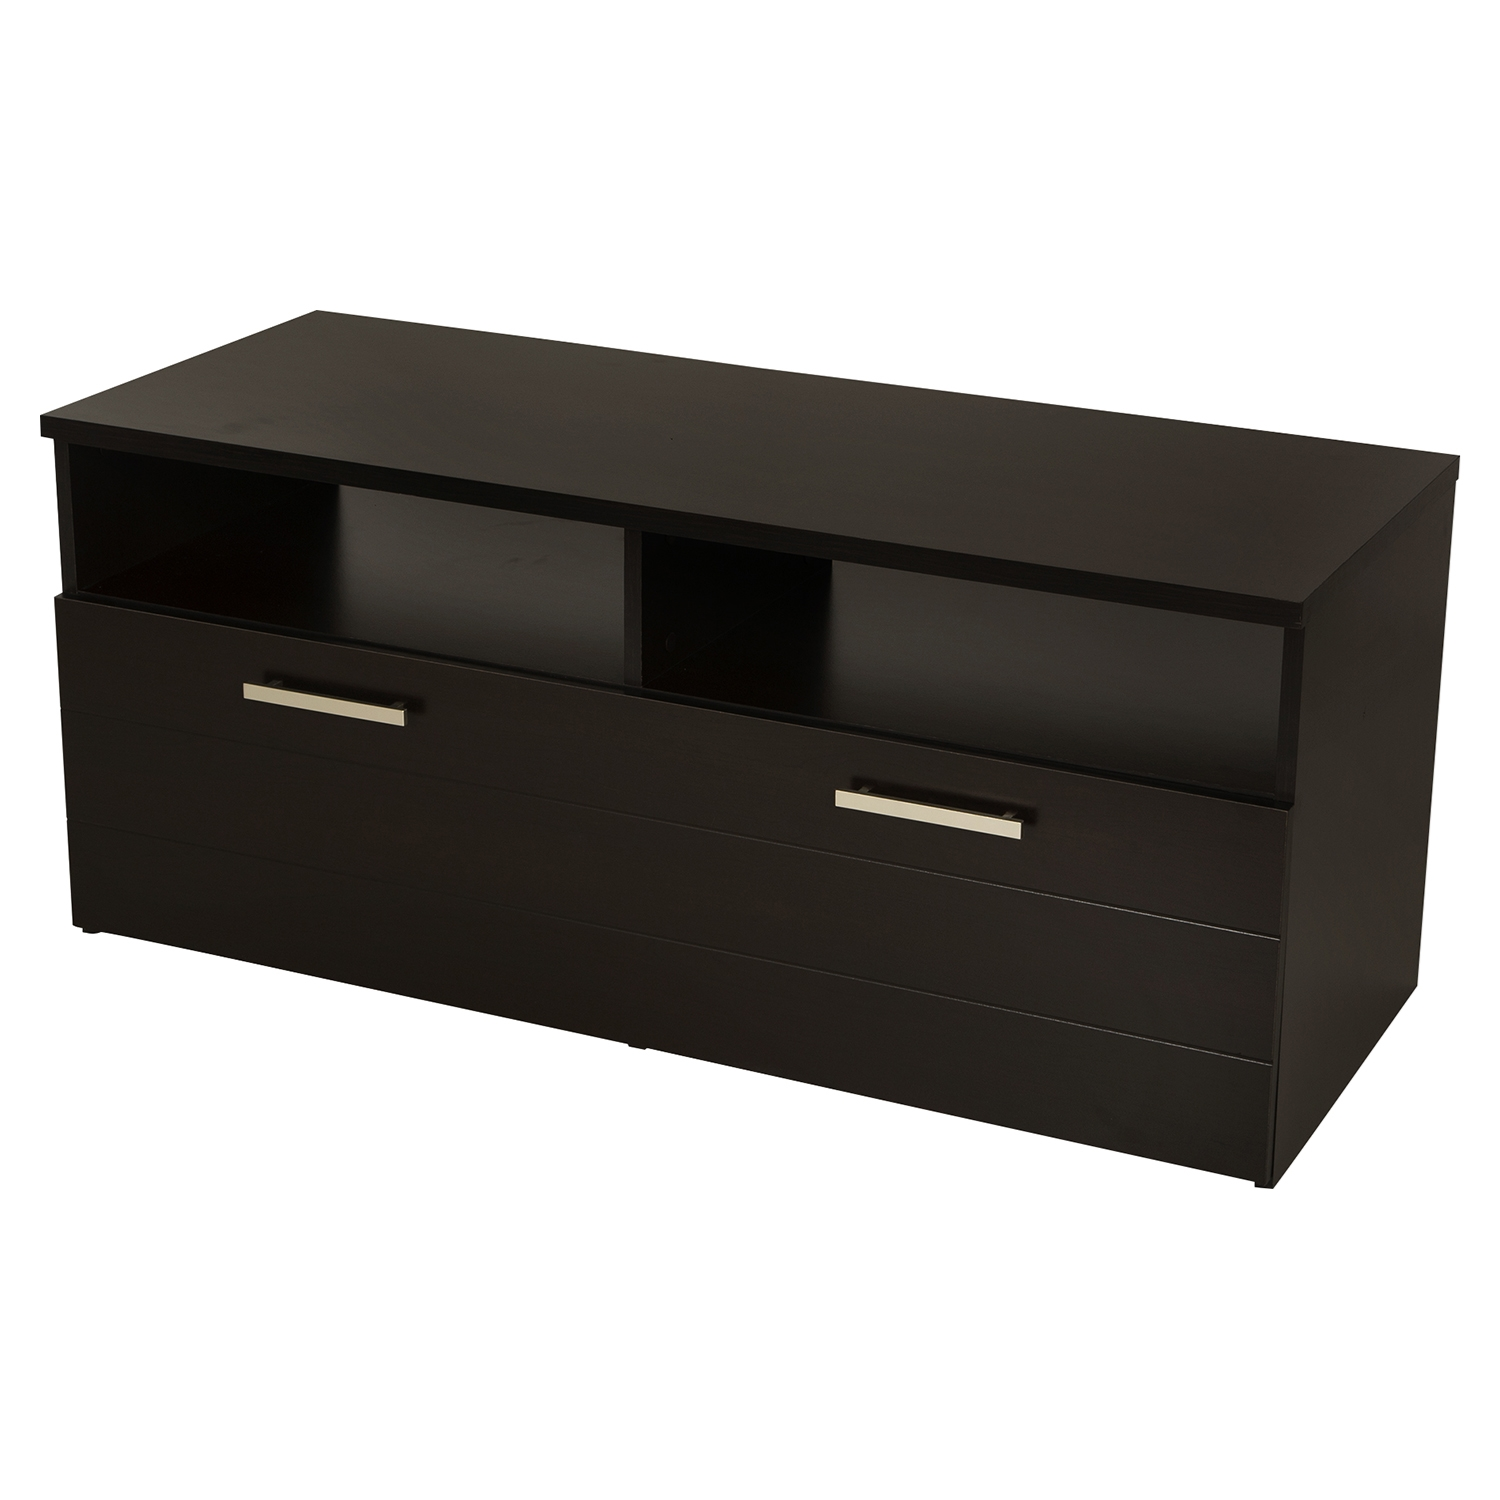 Jambory TV Stand - Storage Bins, Casters, Chocolate